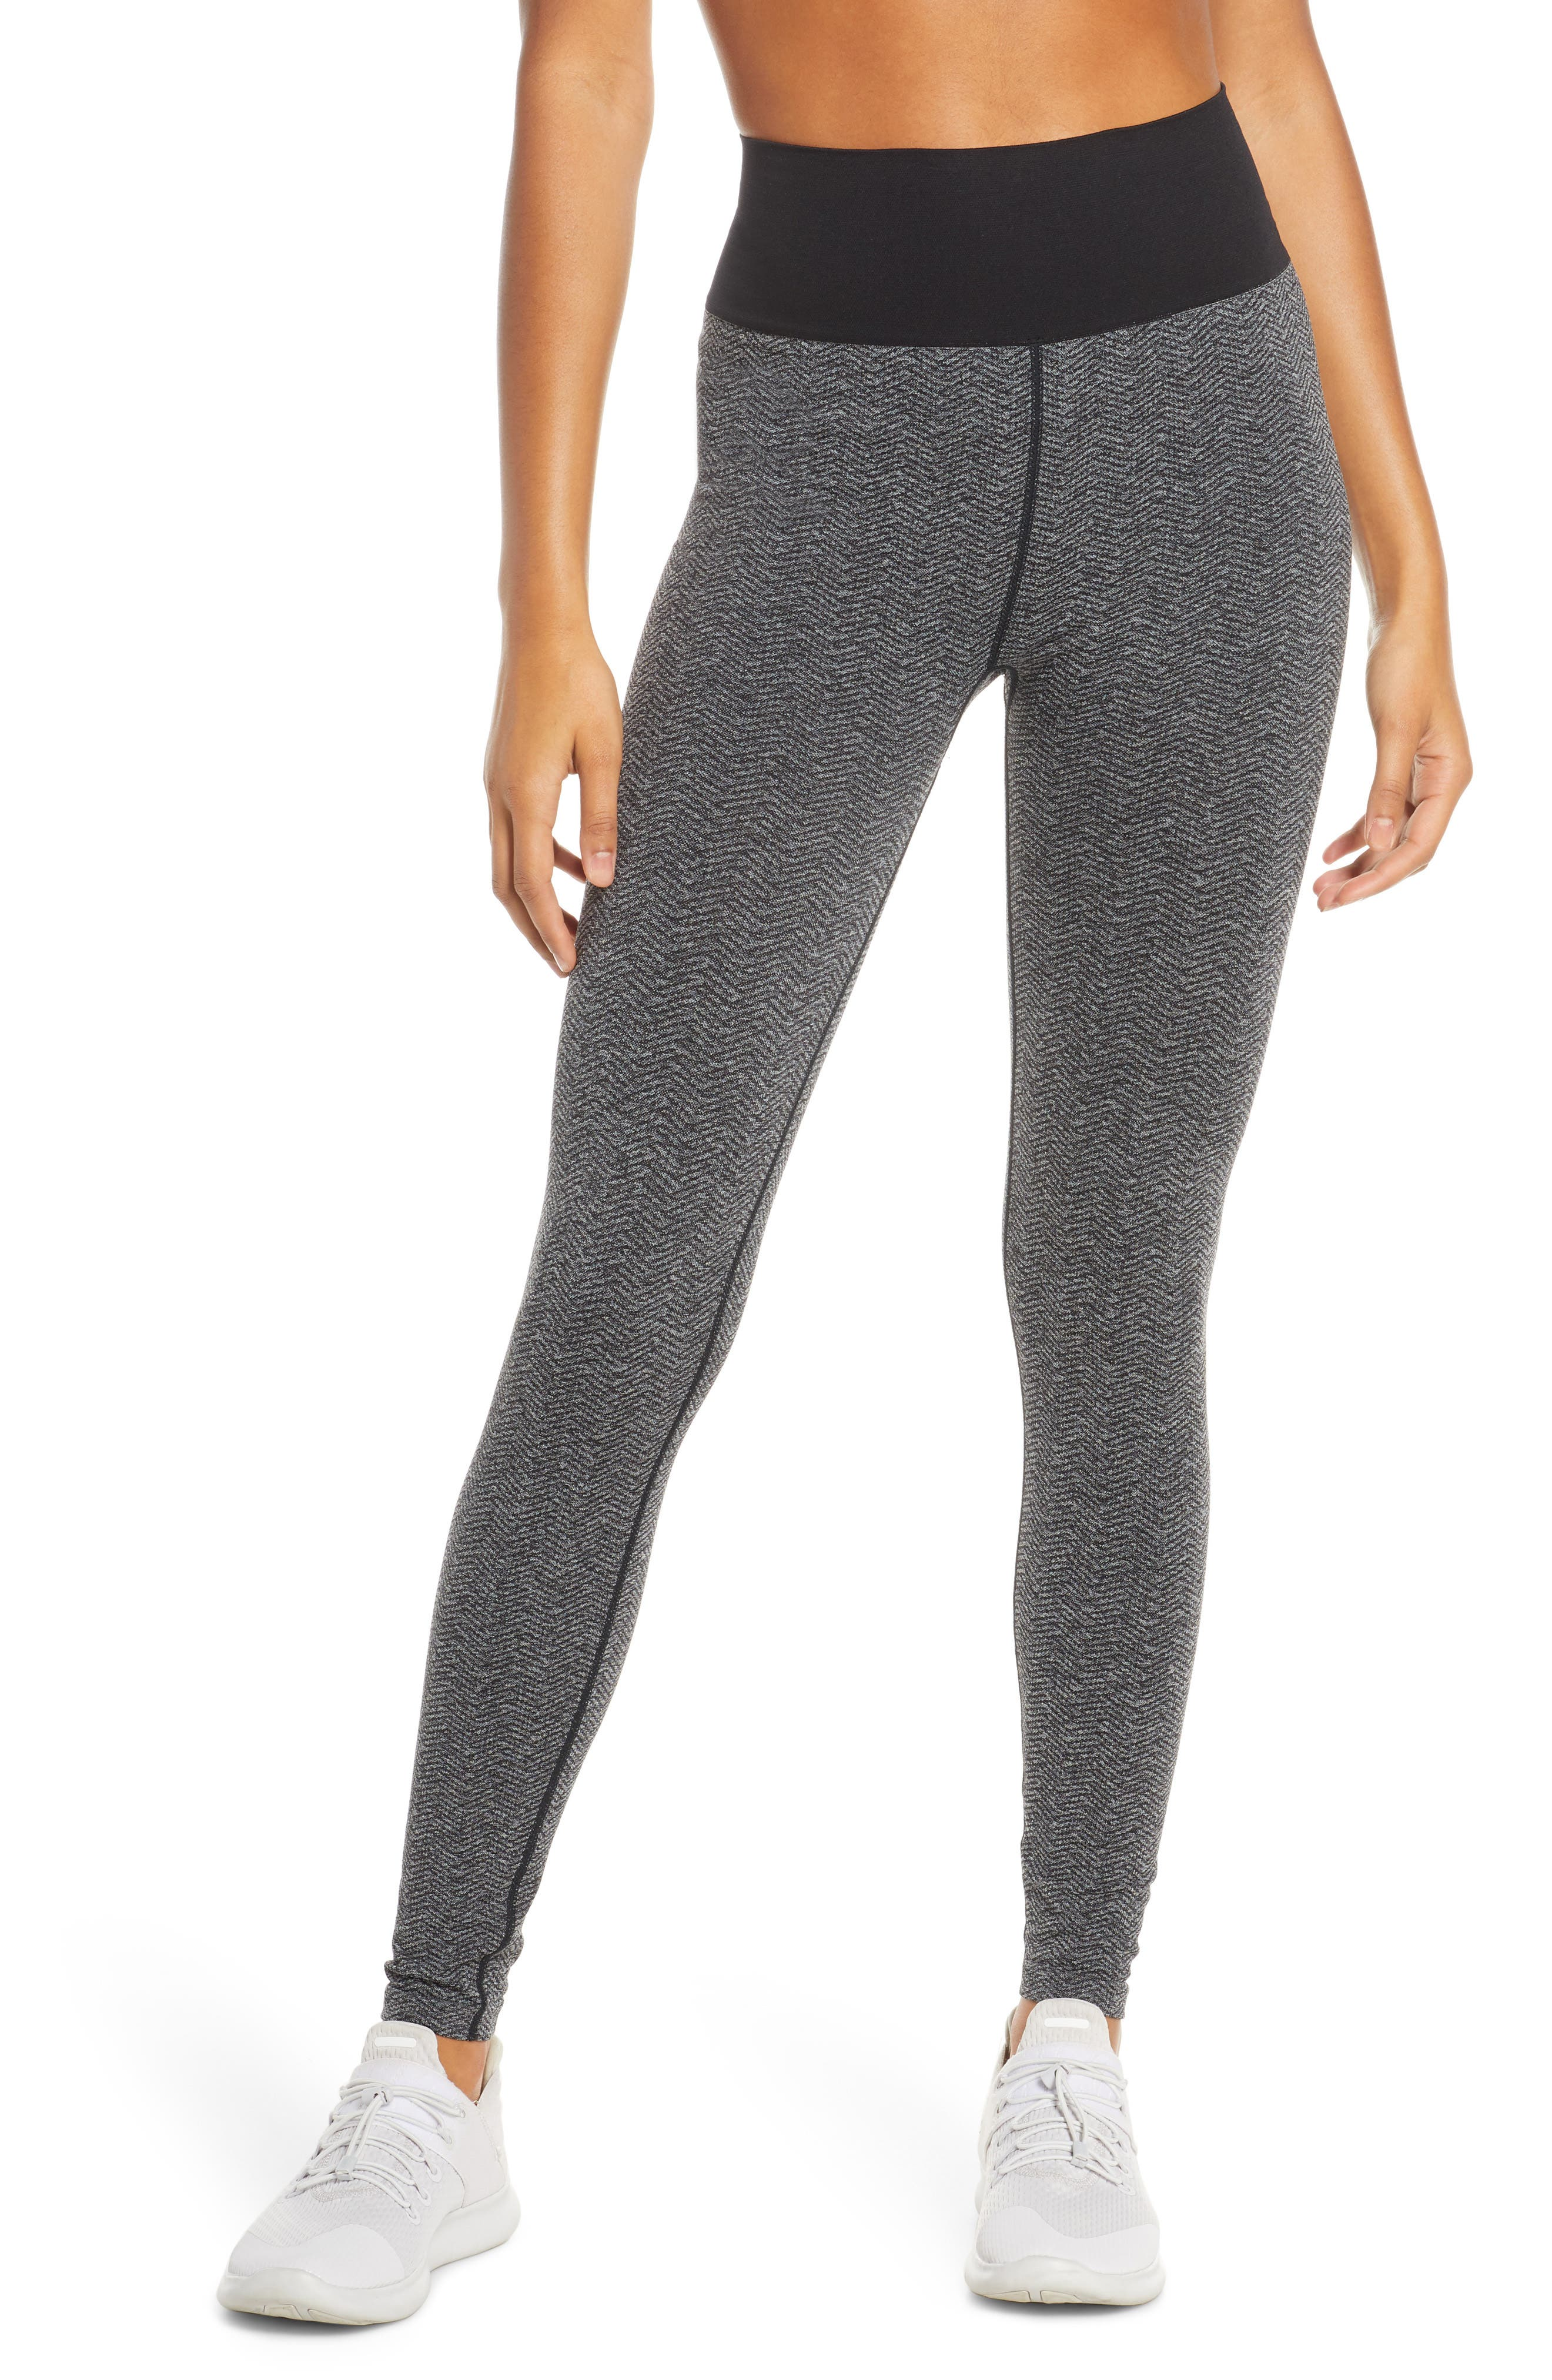 Zella Herringbone High Waist Leggings